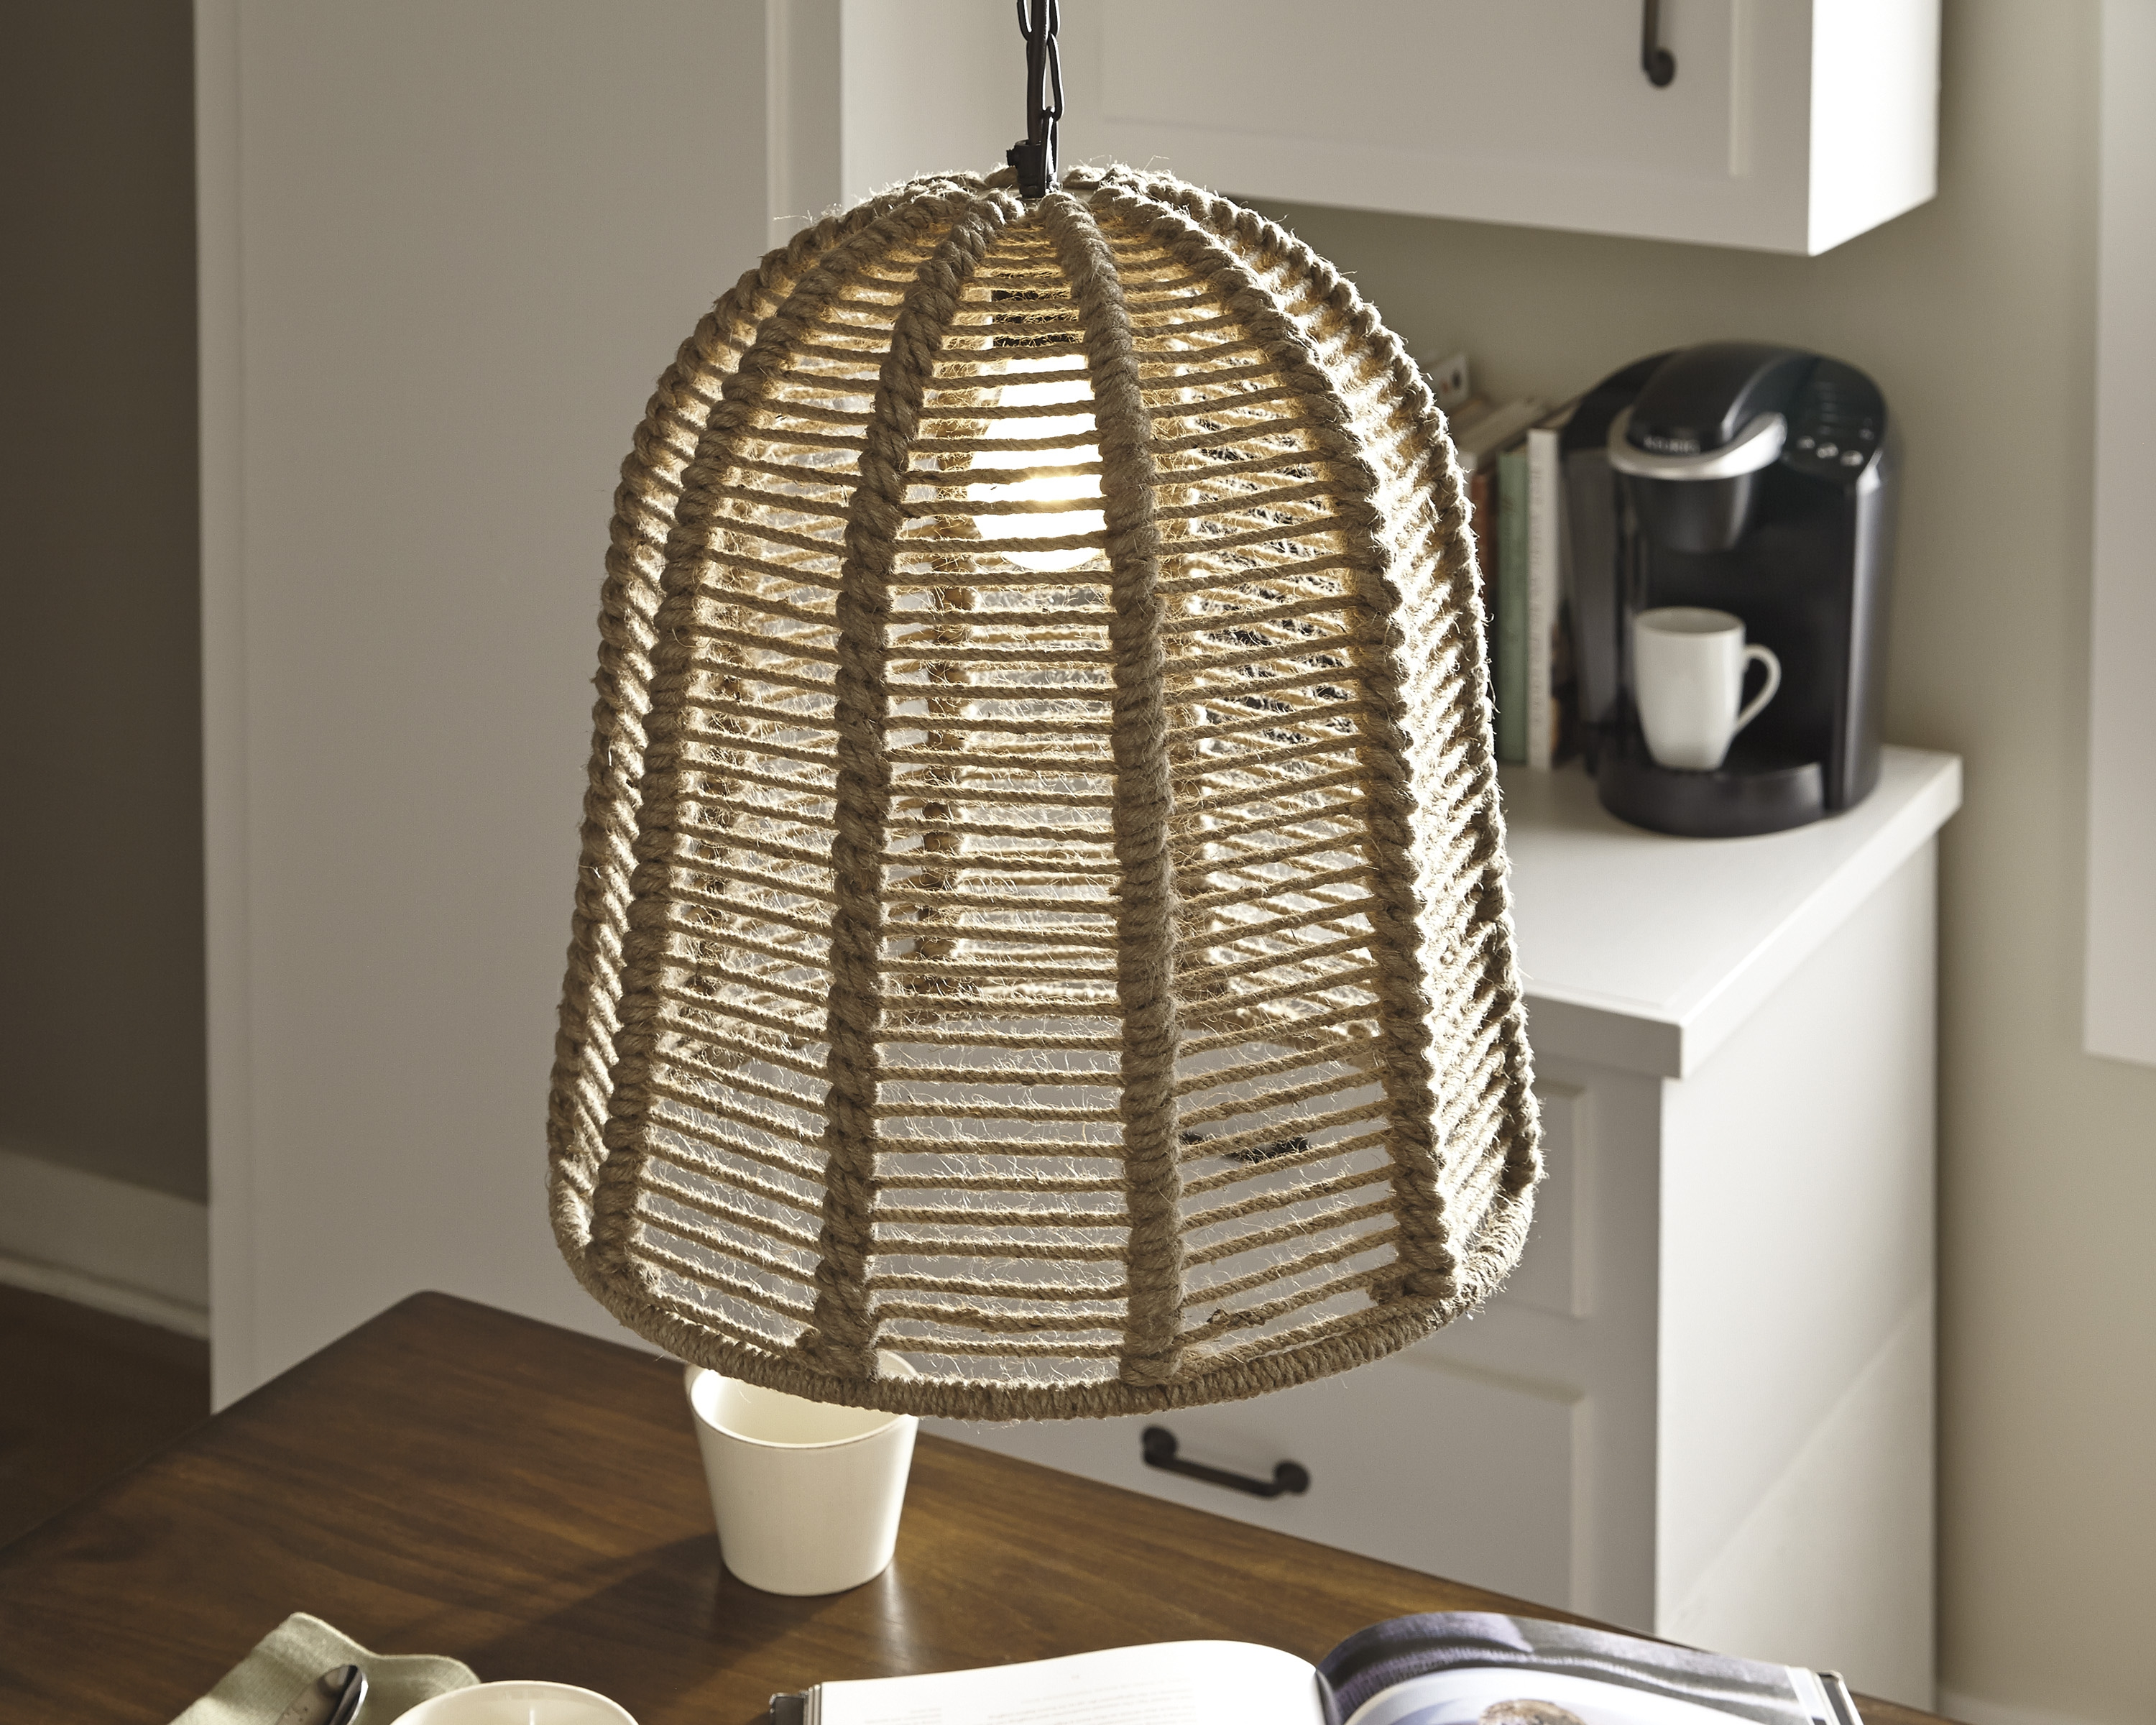 Ashley Furniture Jamarion Natural Rope Pendant Light The